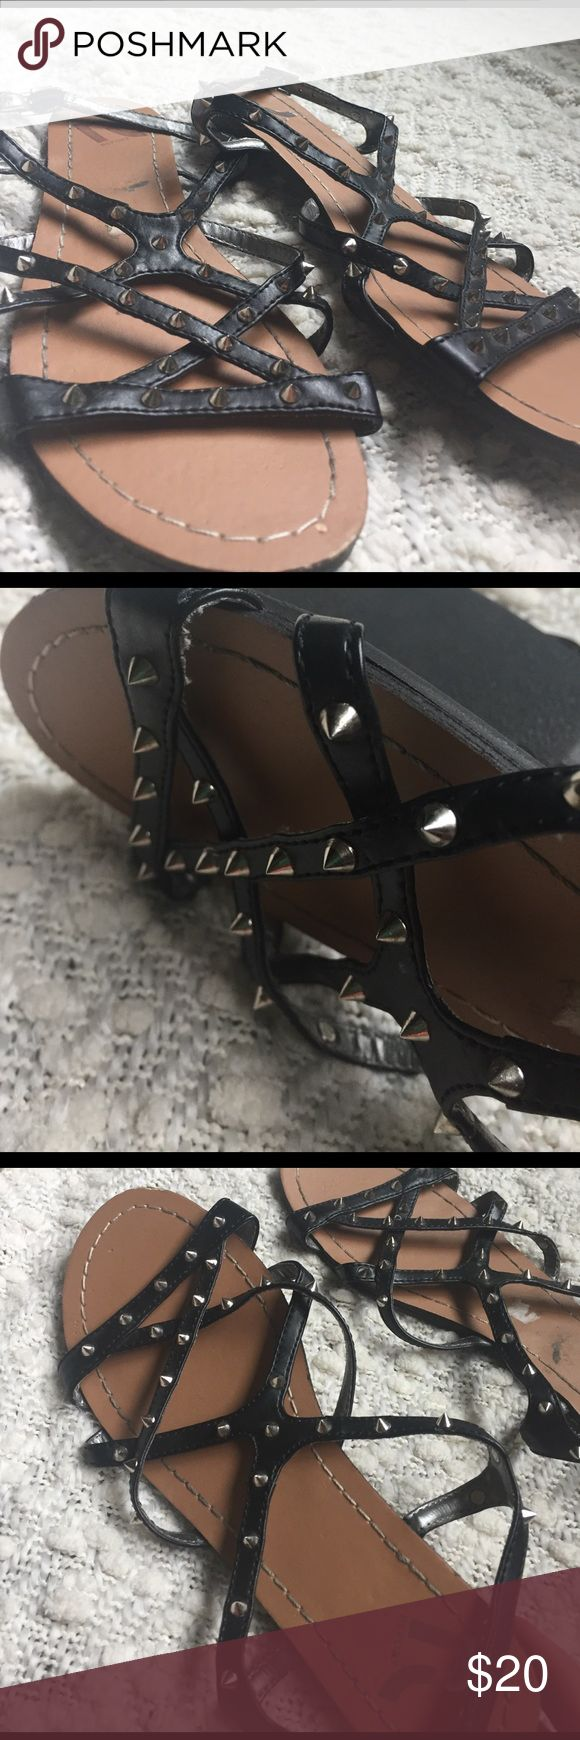 Perfect Condition Report Black Spiked Sandals Spikes are Sharp! Really cute though just not great if you have kids lol Report Shoes Sandals